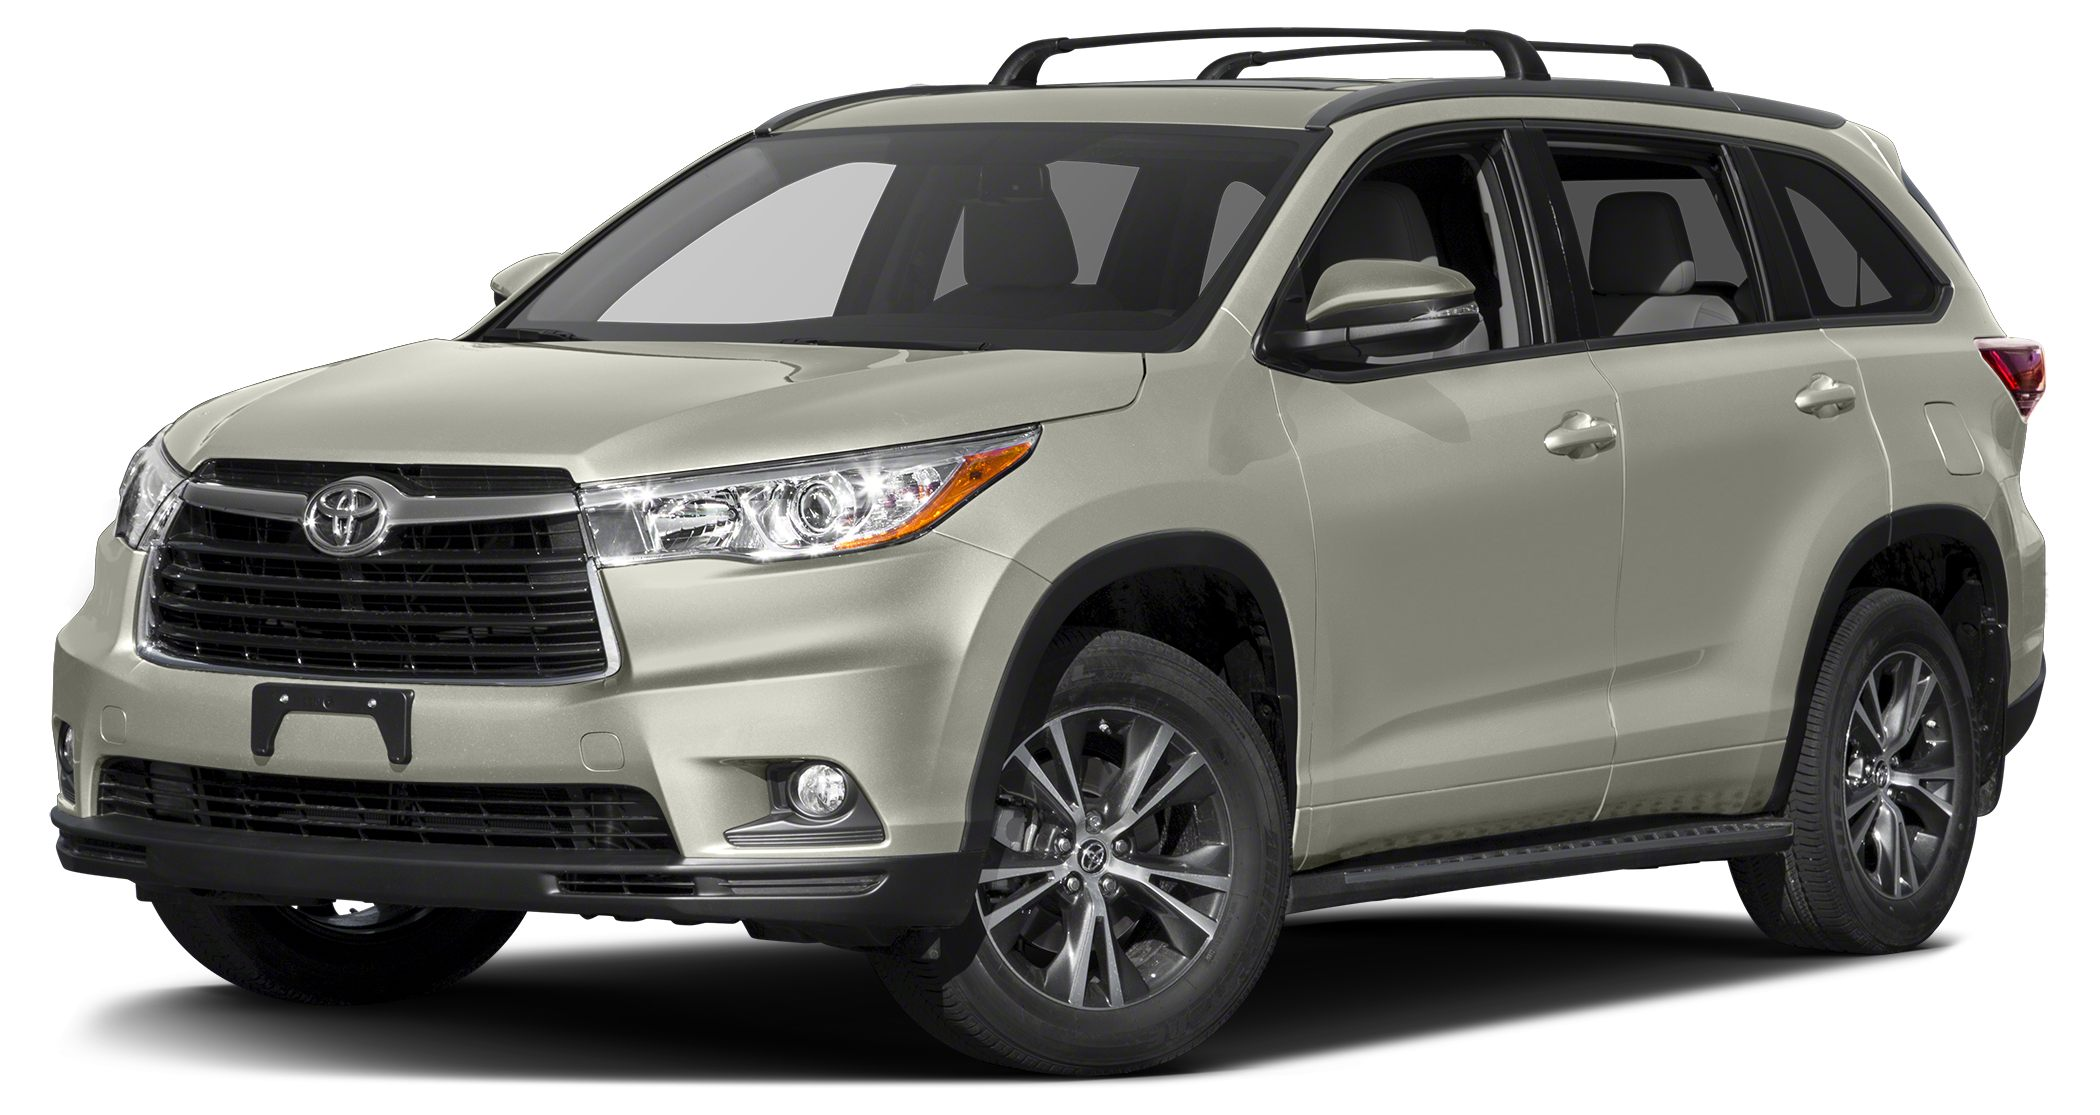 2016 Toyota Highlander XLE Miles 0Color Blizzard Pearl Stock 56488 VIN 5TDKKRFH6GS156488